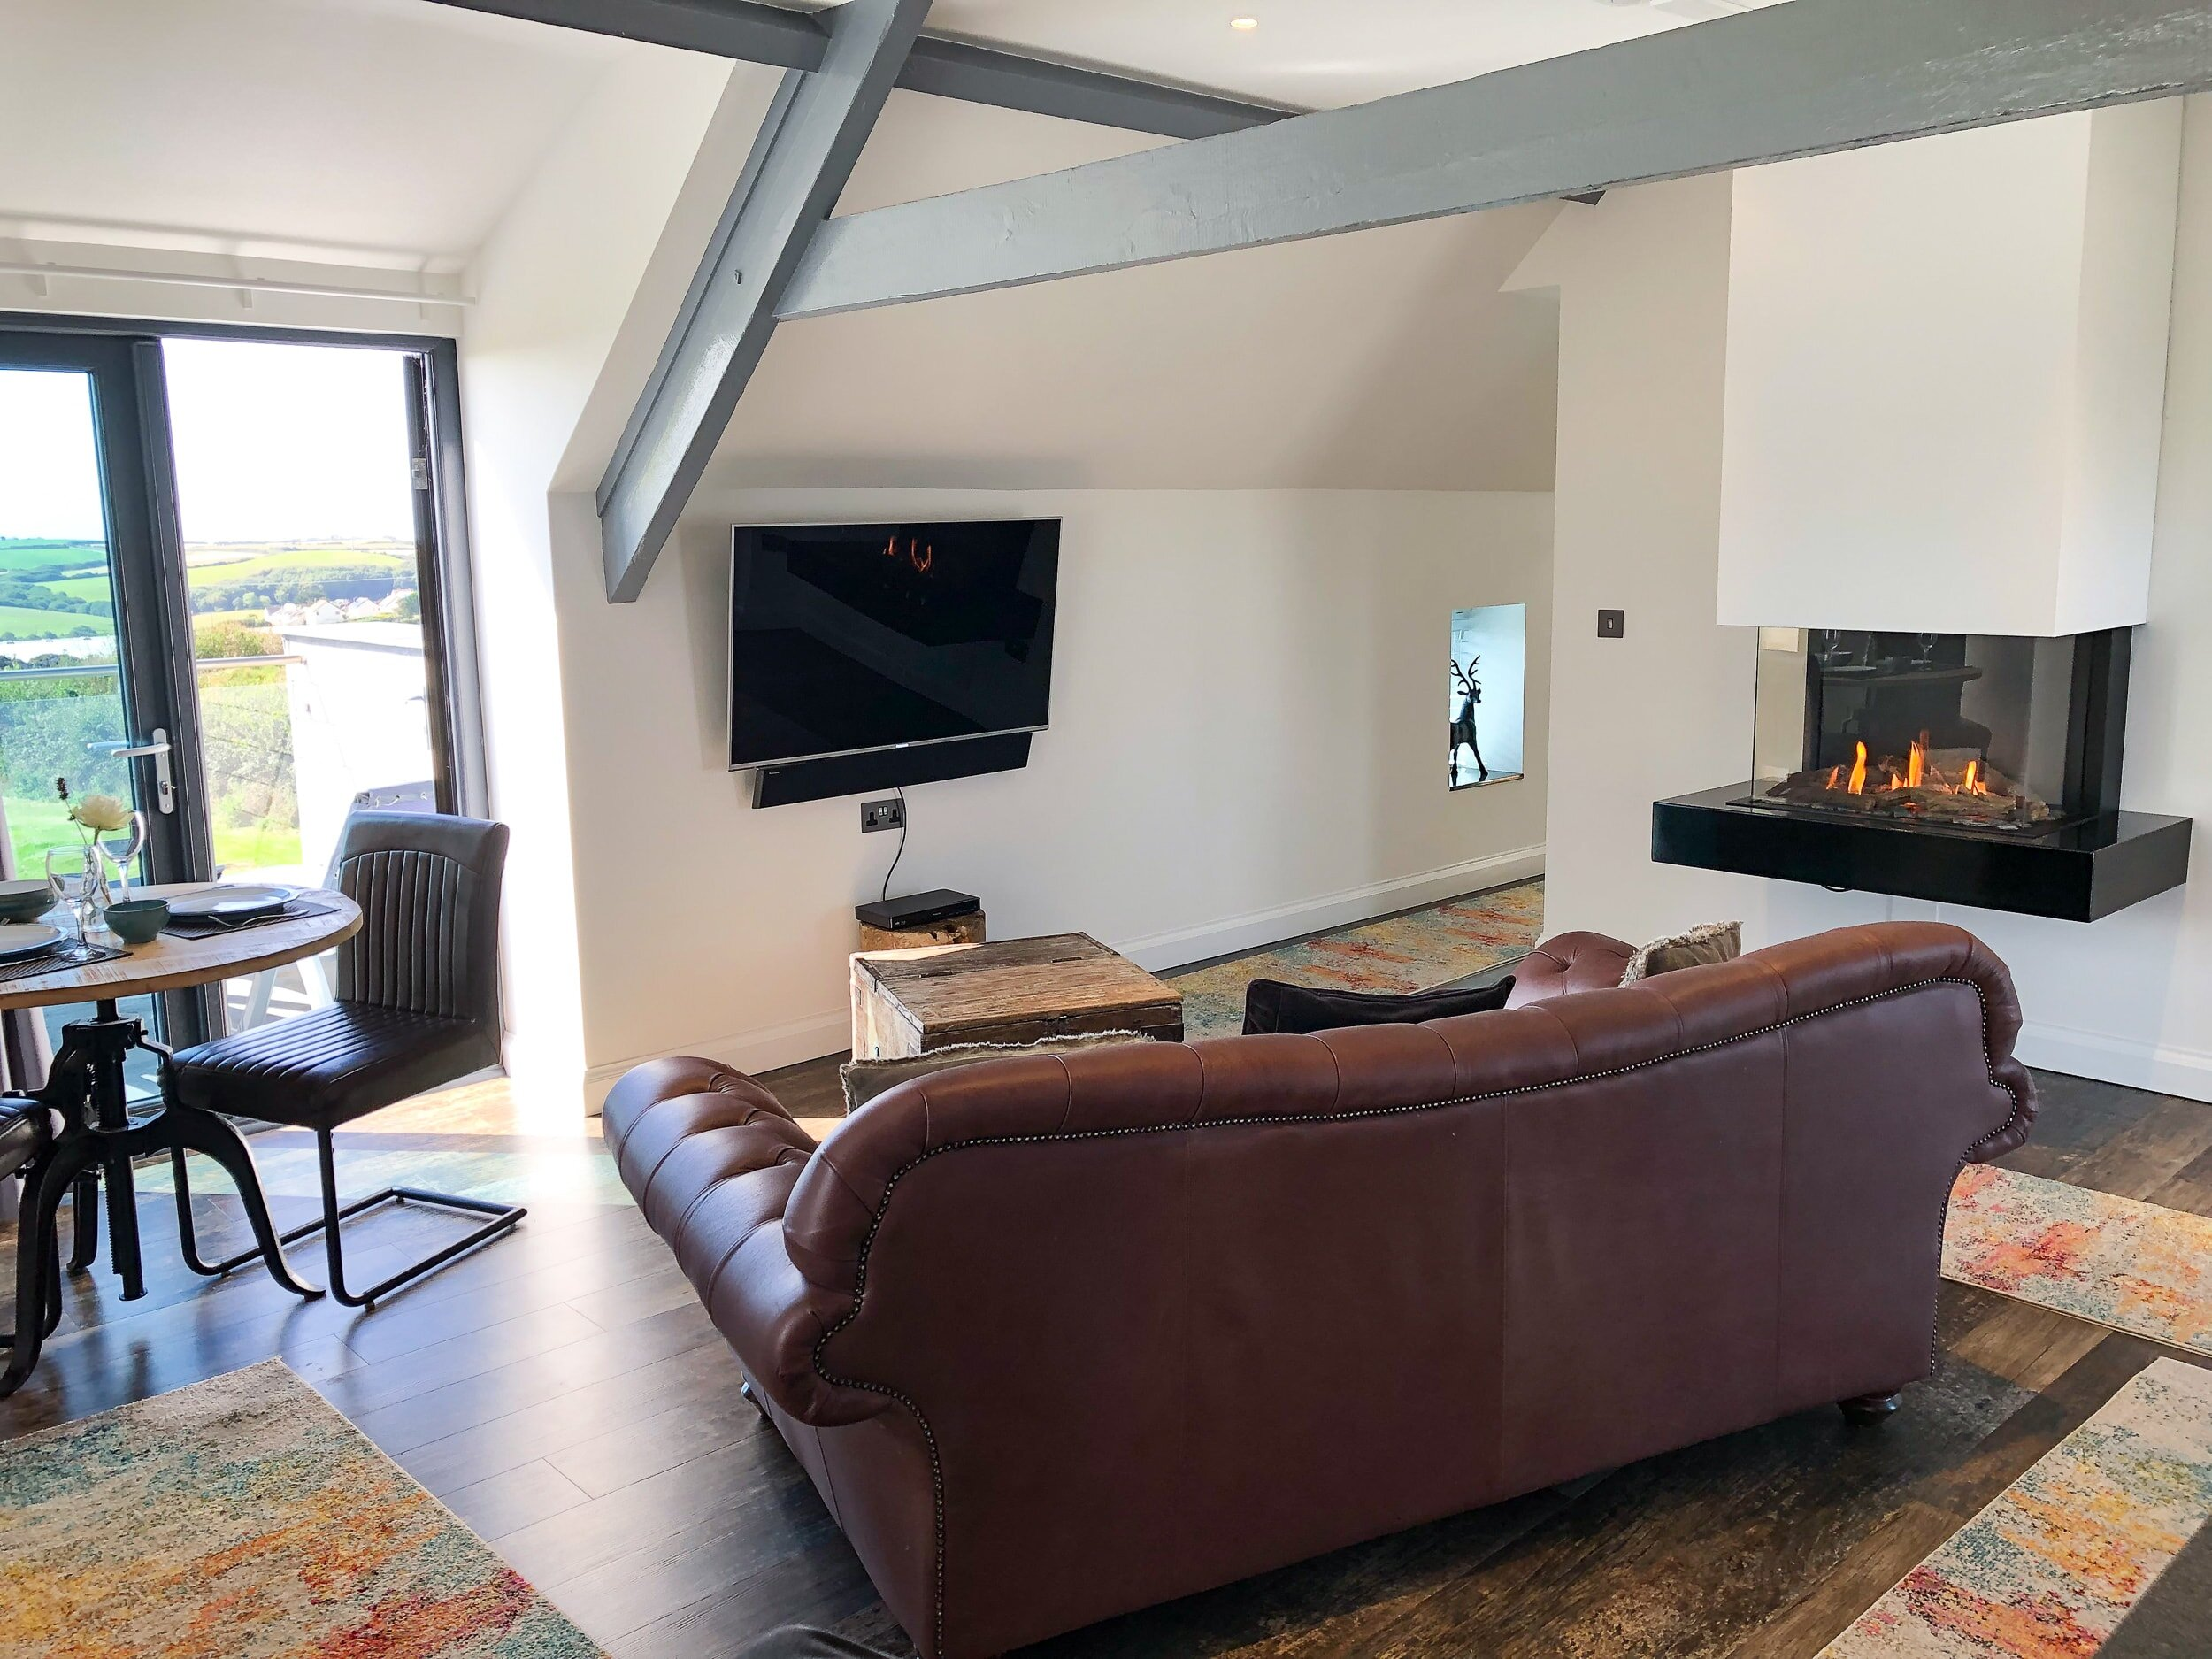 Large leather sofa for two in front of the flat screen TV and gas fire place